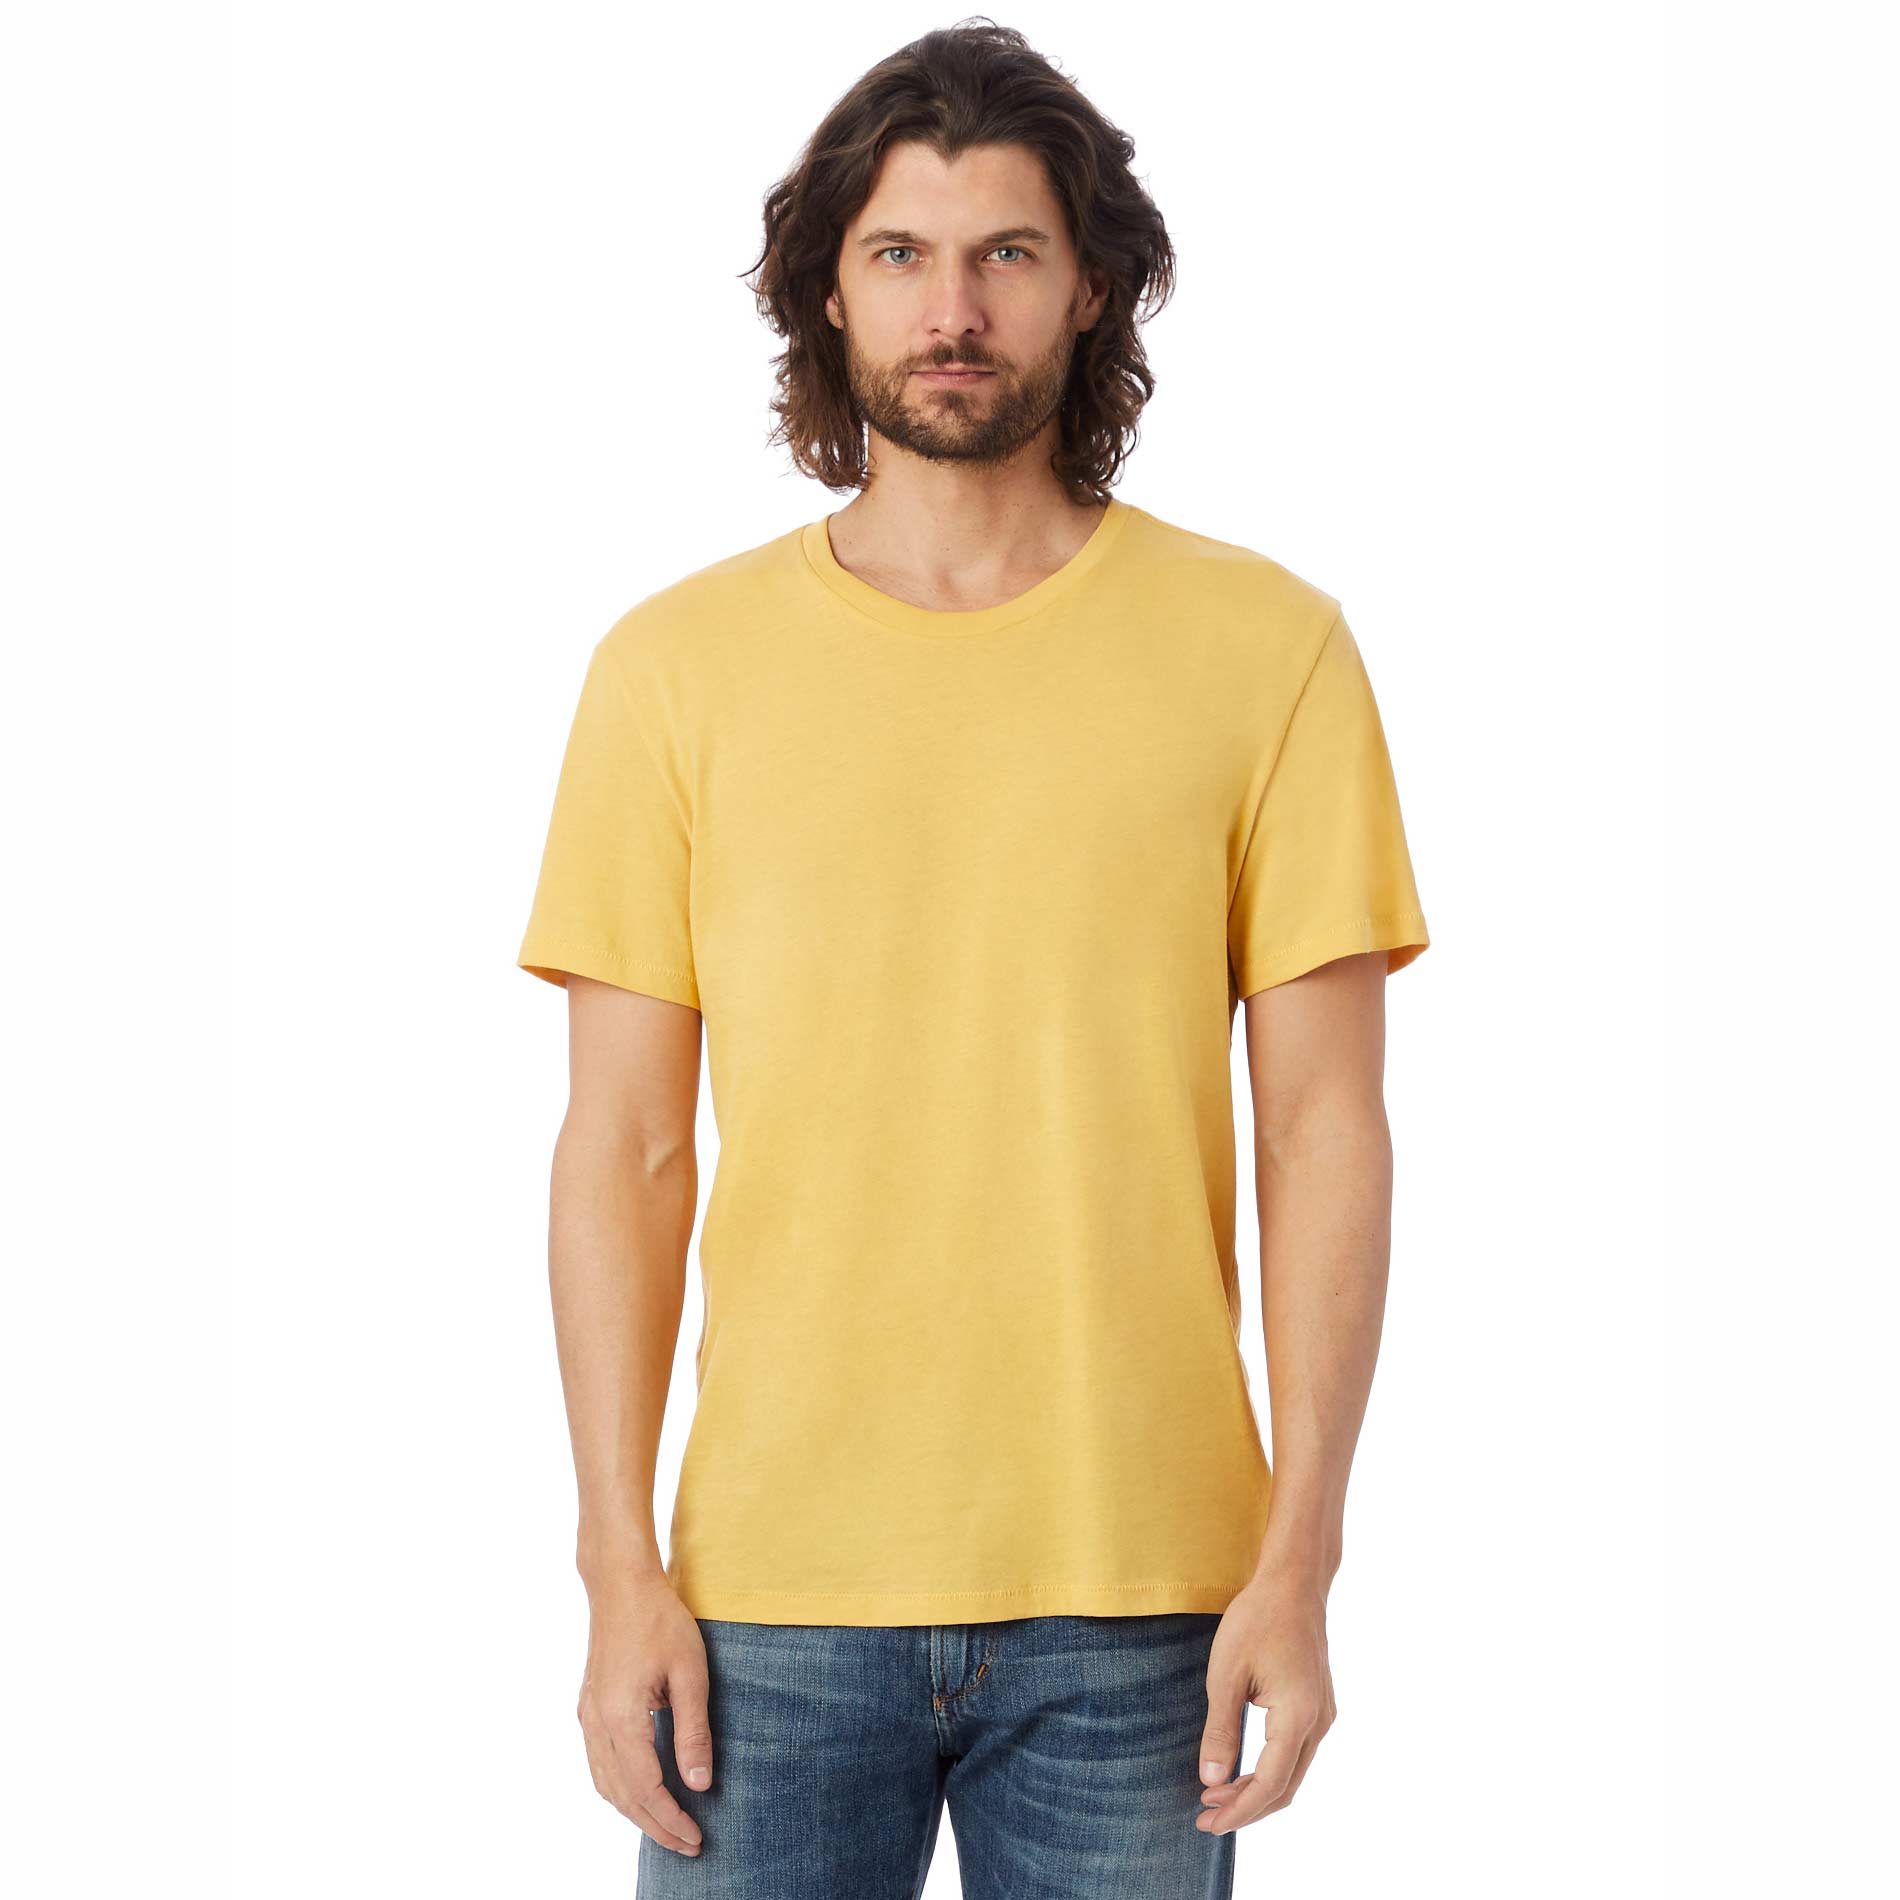 MENS ORGANIC COTTON TEE